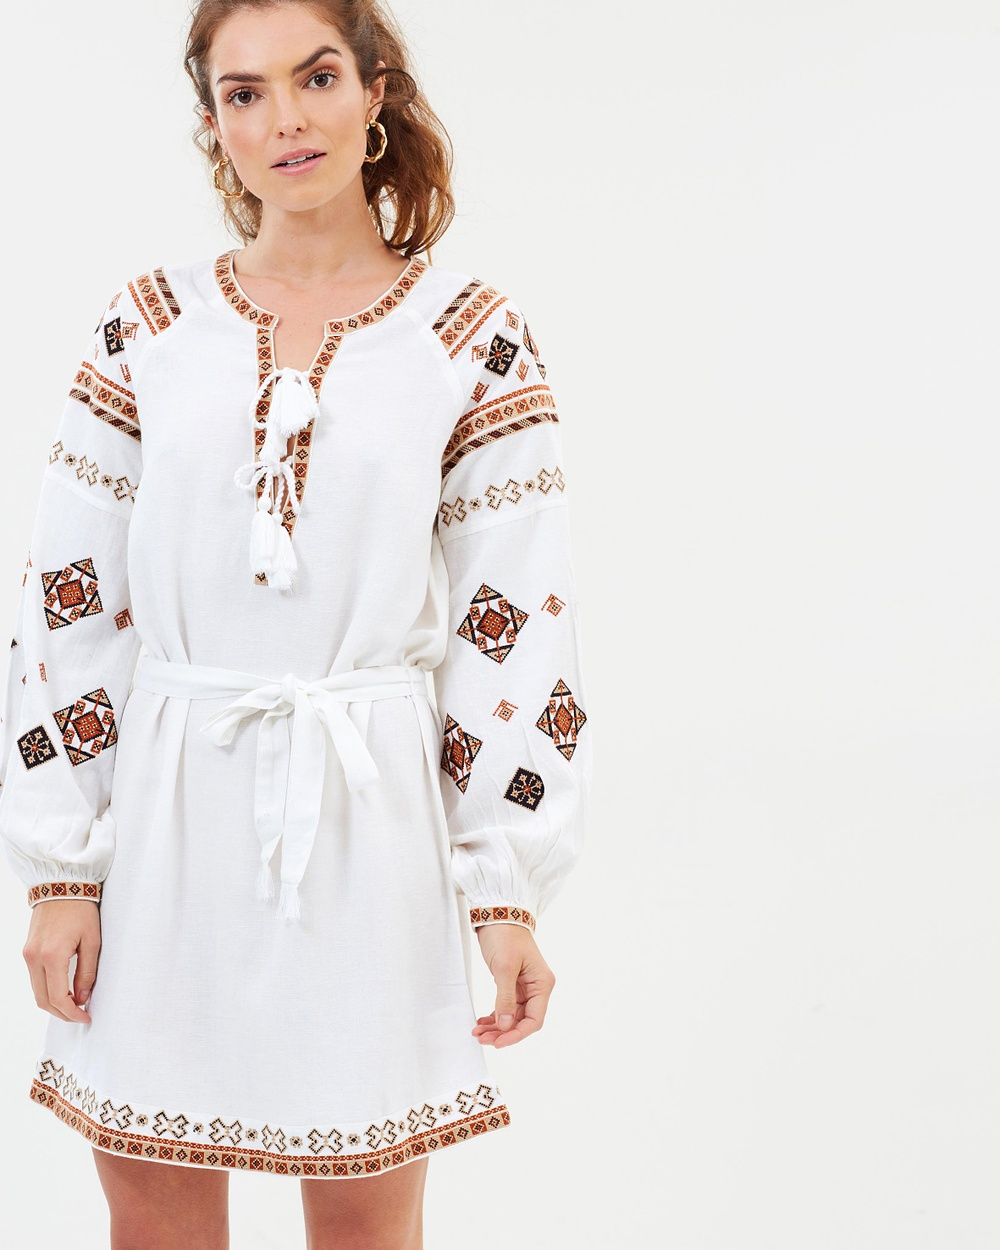 Tigerlily Azar Dress Dresses White Azar Dress